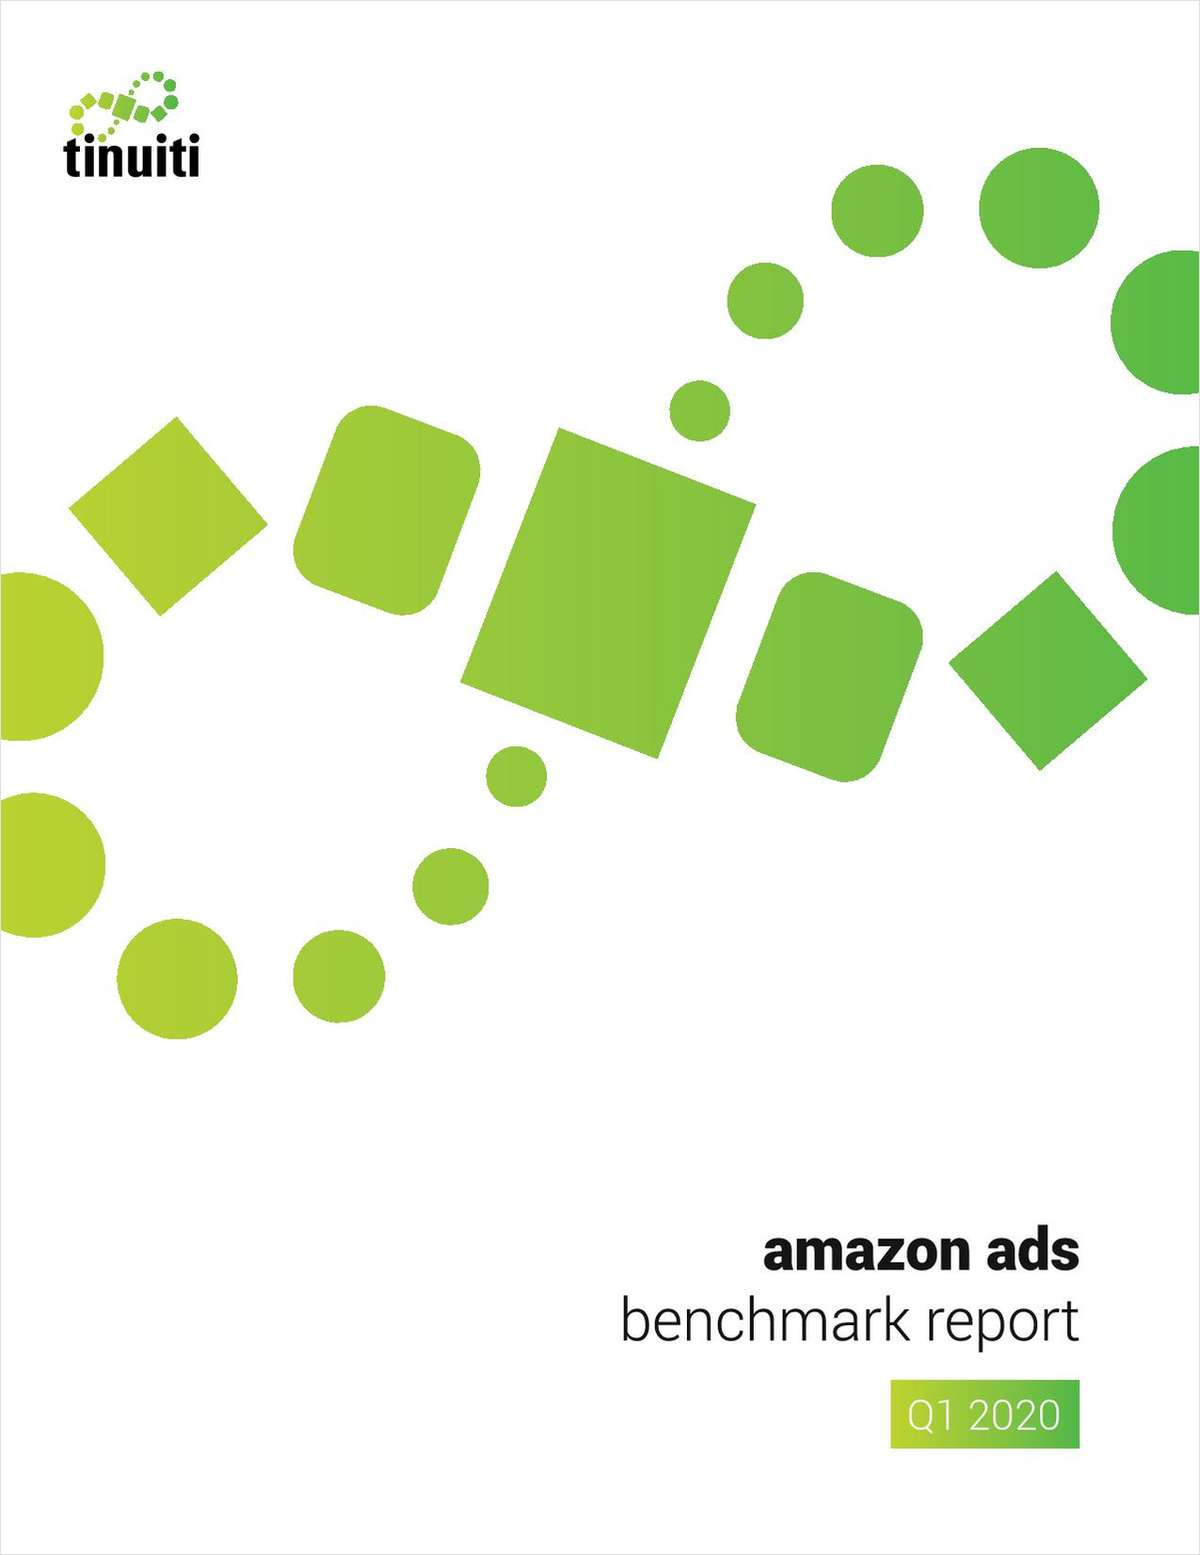 Amazon Ads Benchmark Report: Amazon Performance Data To Recalibrate Q2 & Beyond